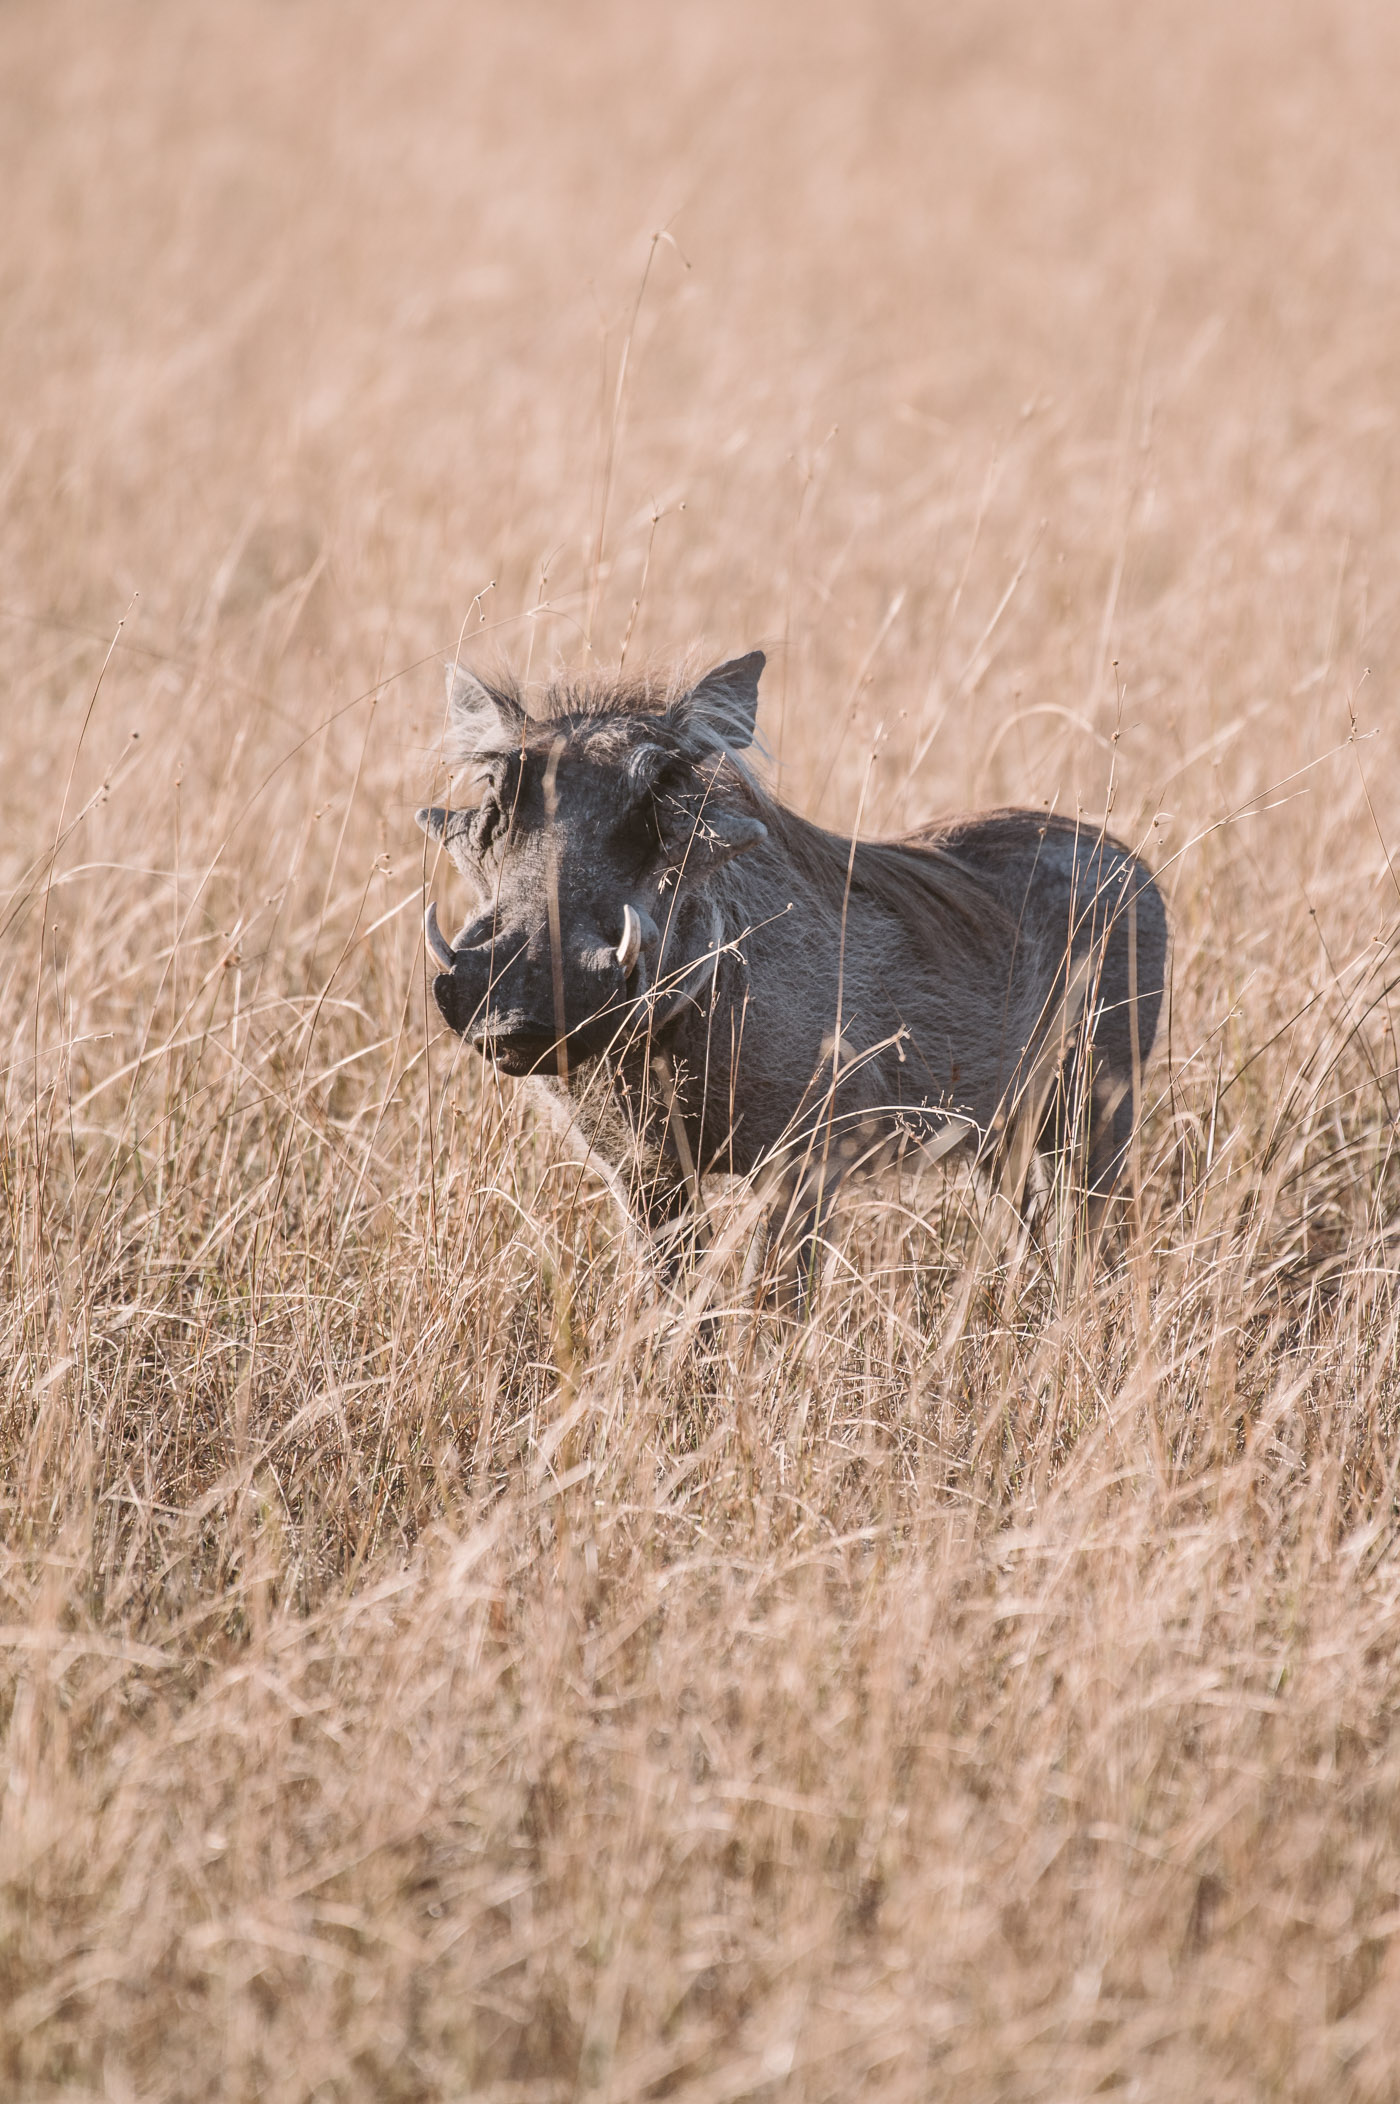 A wild hog in the Okavango Delta in Botswana